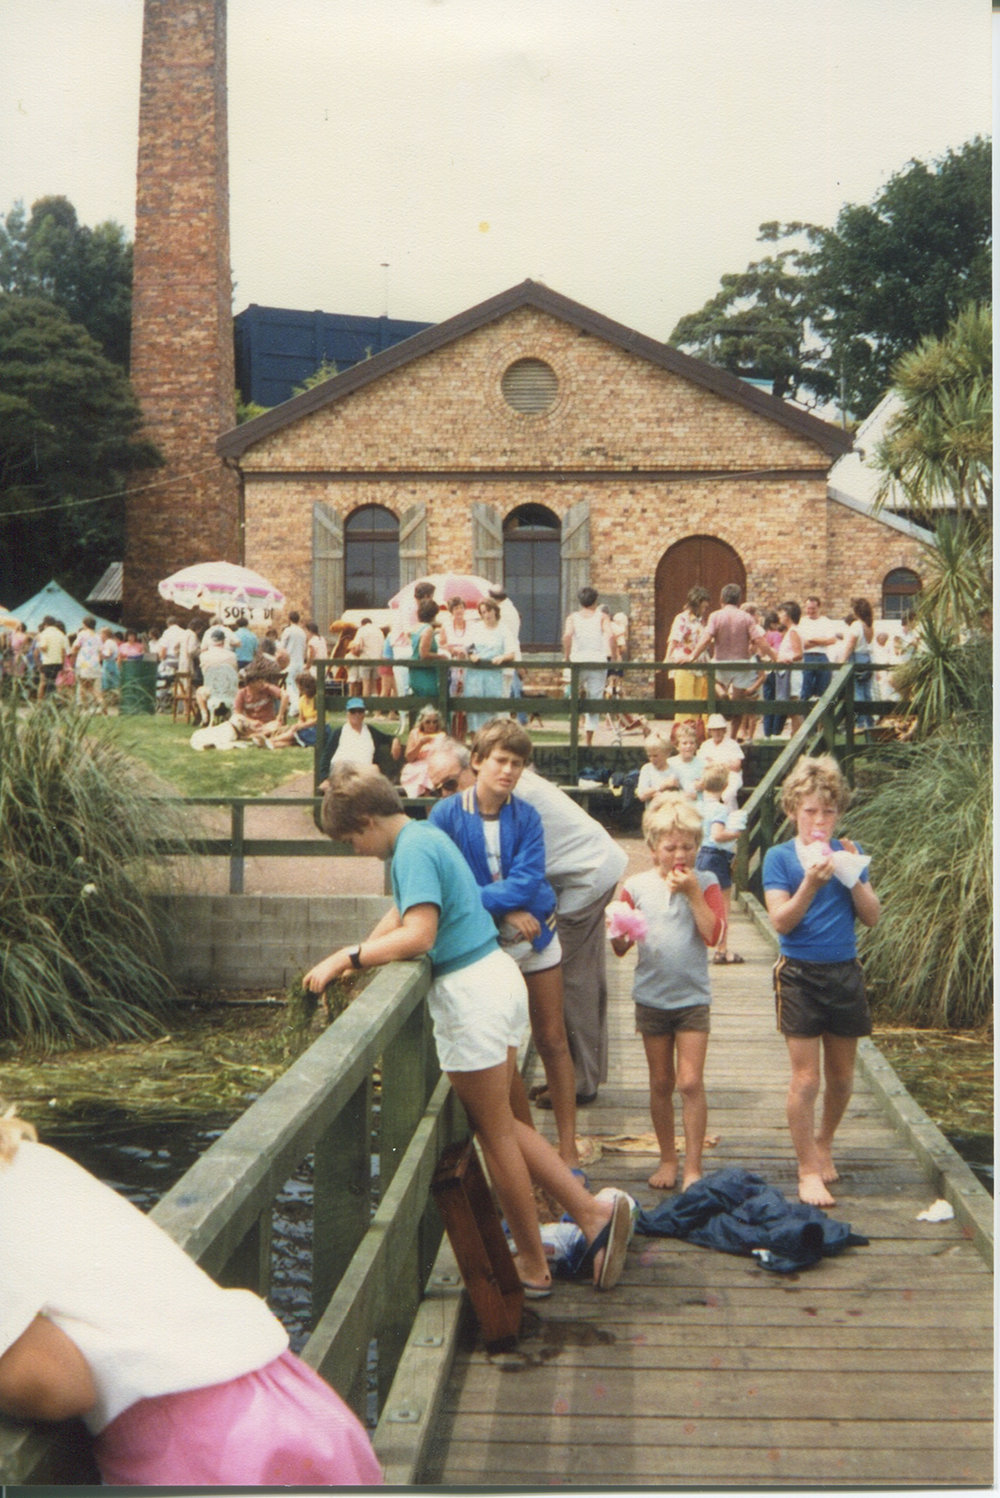 Annual picnic fundraiser at the Takapuna Lakehouse. Image credit: Mags Delaney. 1986.